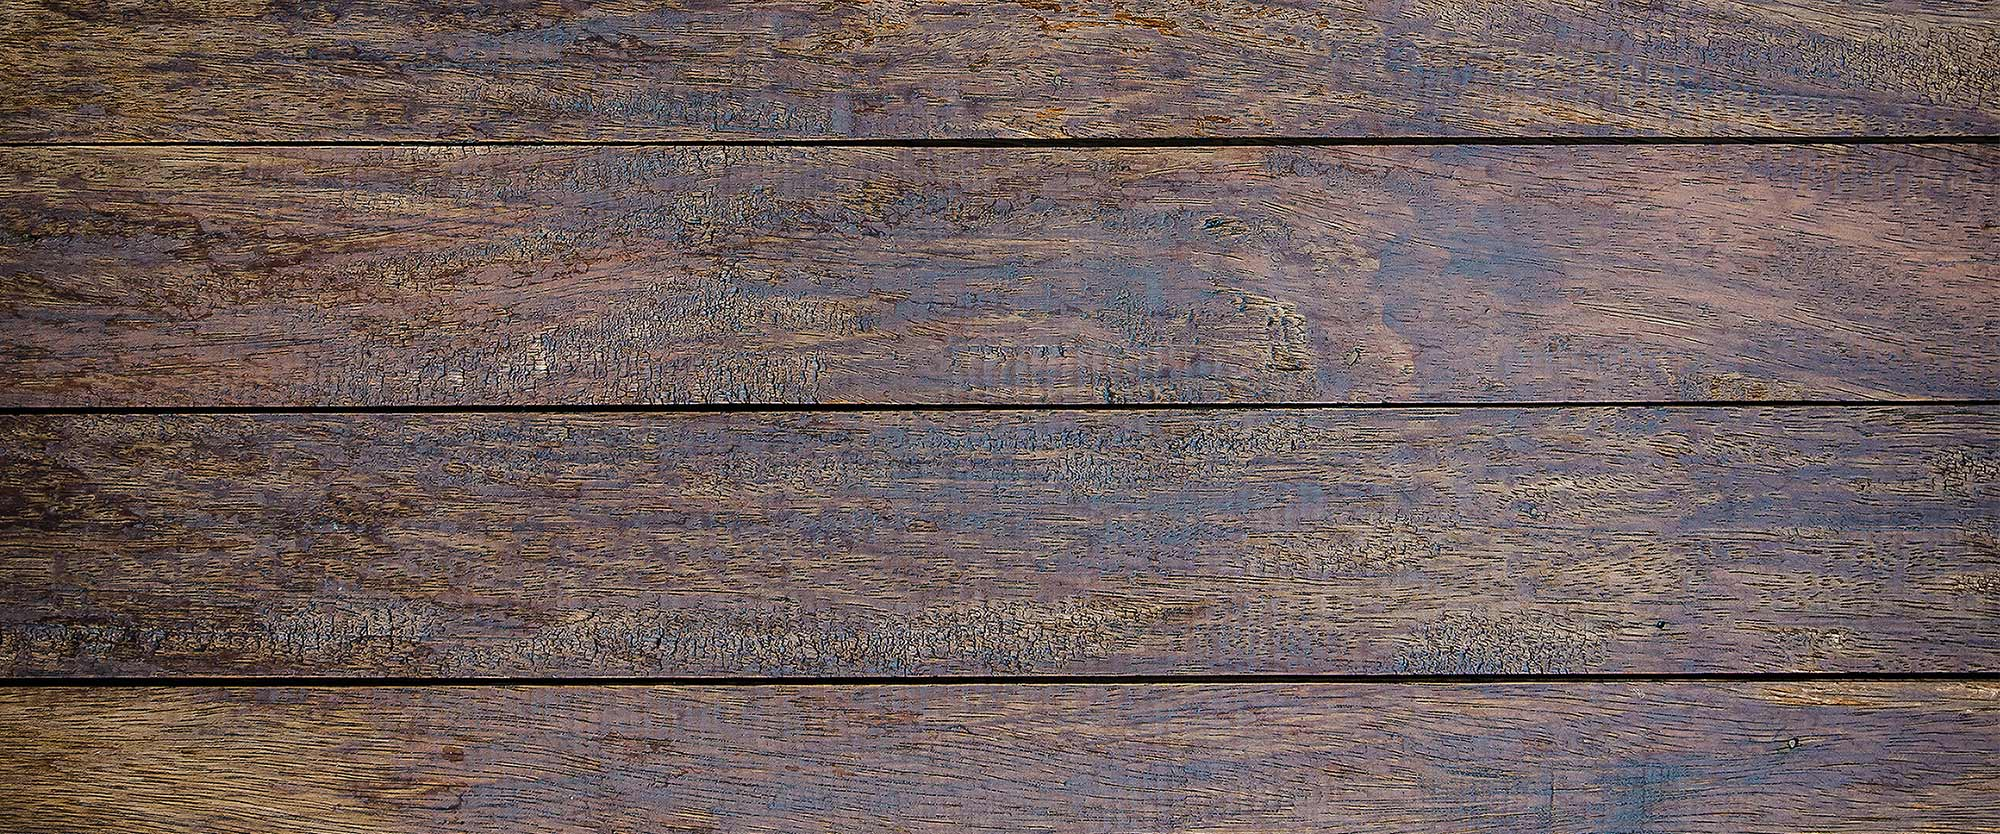 slider-woodbackground